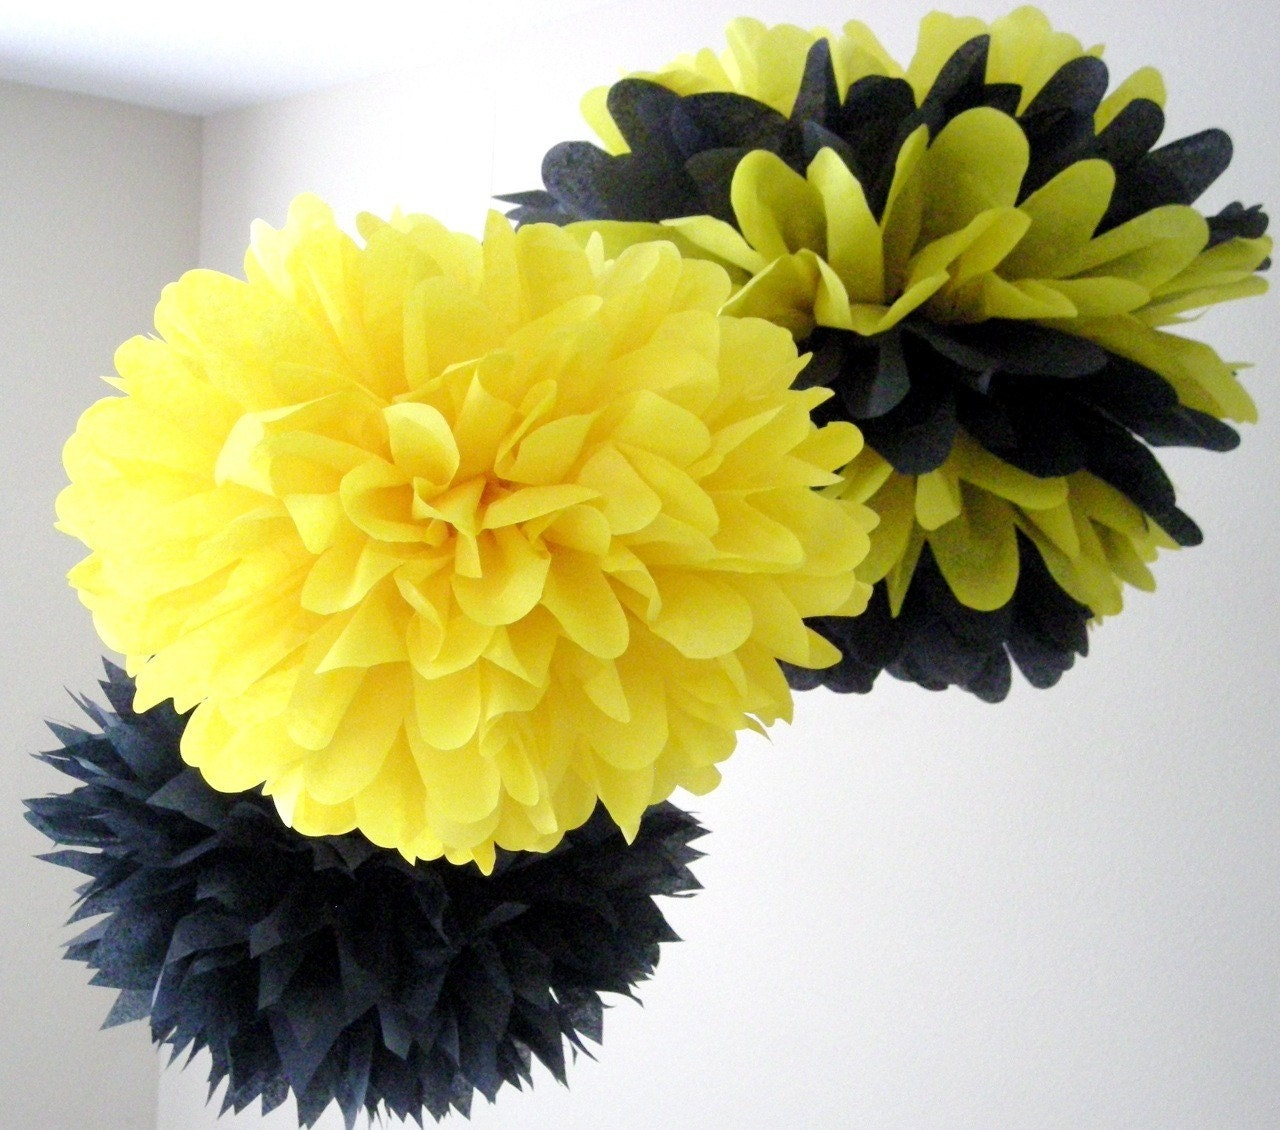 SALE BUMBLE BEE 3 Tissue Paper Poms Bumble Bee Birthday